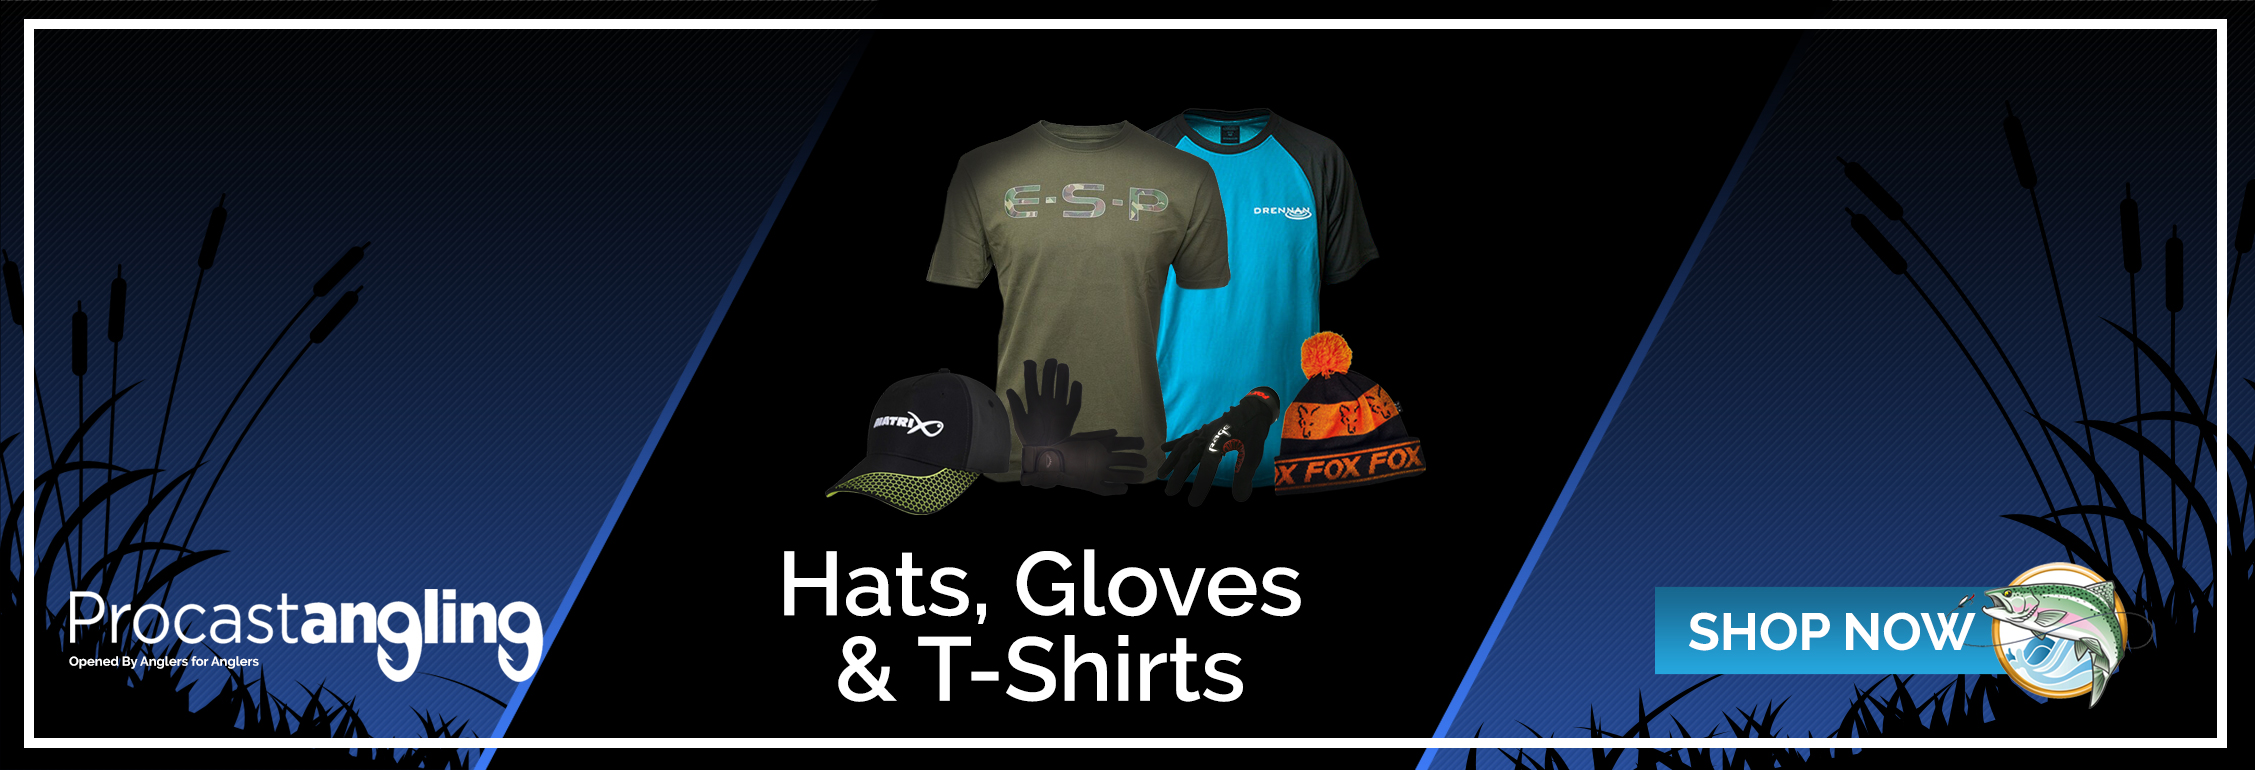 HATS,GLOVES & T-SHIRTS